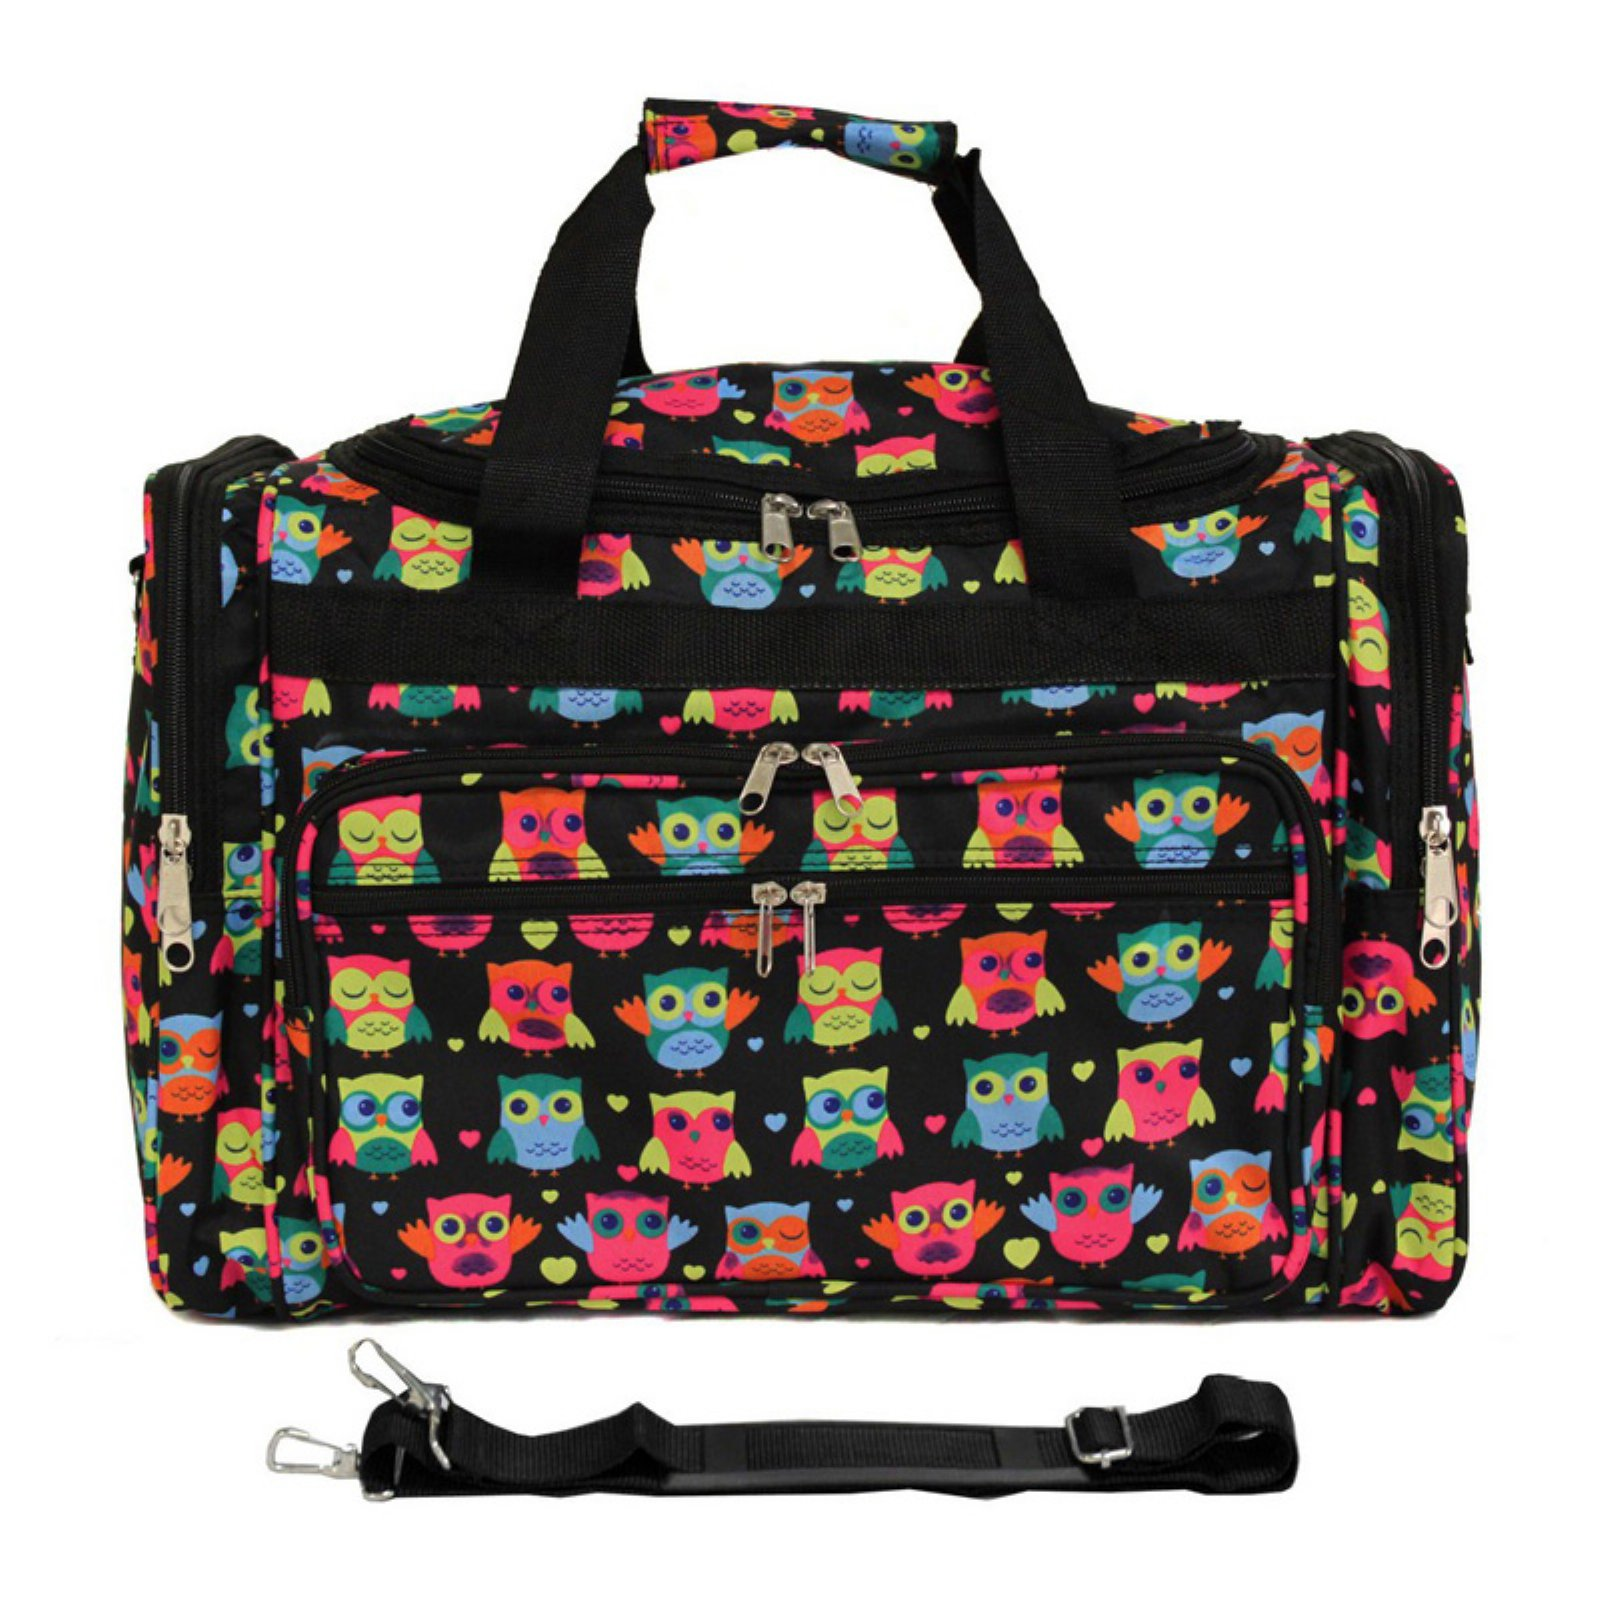 World Traveler Owl 22 in. Travel Duffel Bag